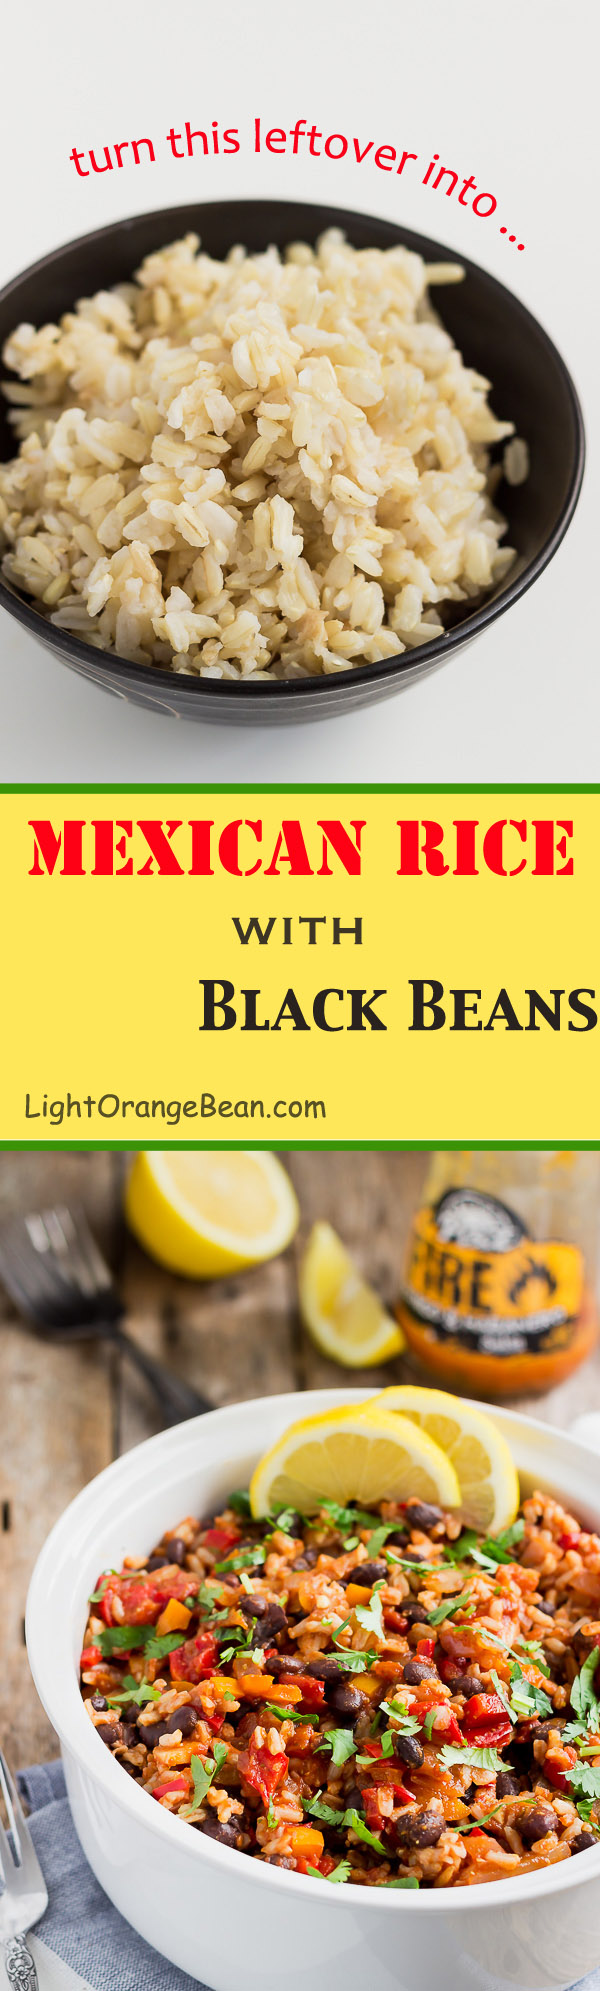 If you happen to have some leftovers and want to turn them into a healthy, quick, and flavorful meal, you should definitely try this Mexican rice with black beans. The variety of spicy flavors, from the garlic, onion, salsa, and cumin, blends really well with the sweet and tangy taste from the salsa and tomato.  (#vegan #glutenfree #glutenfreevegan #glutenfreemeals #leftovermakeover #leftoverrice #veganmeals #mexicanrice)